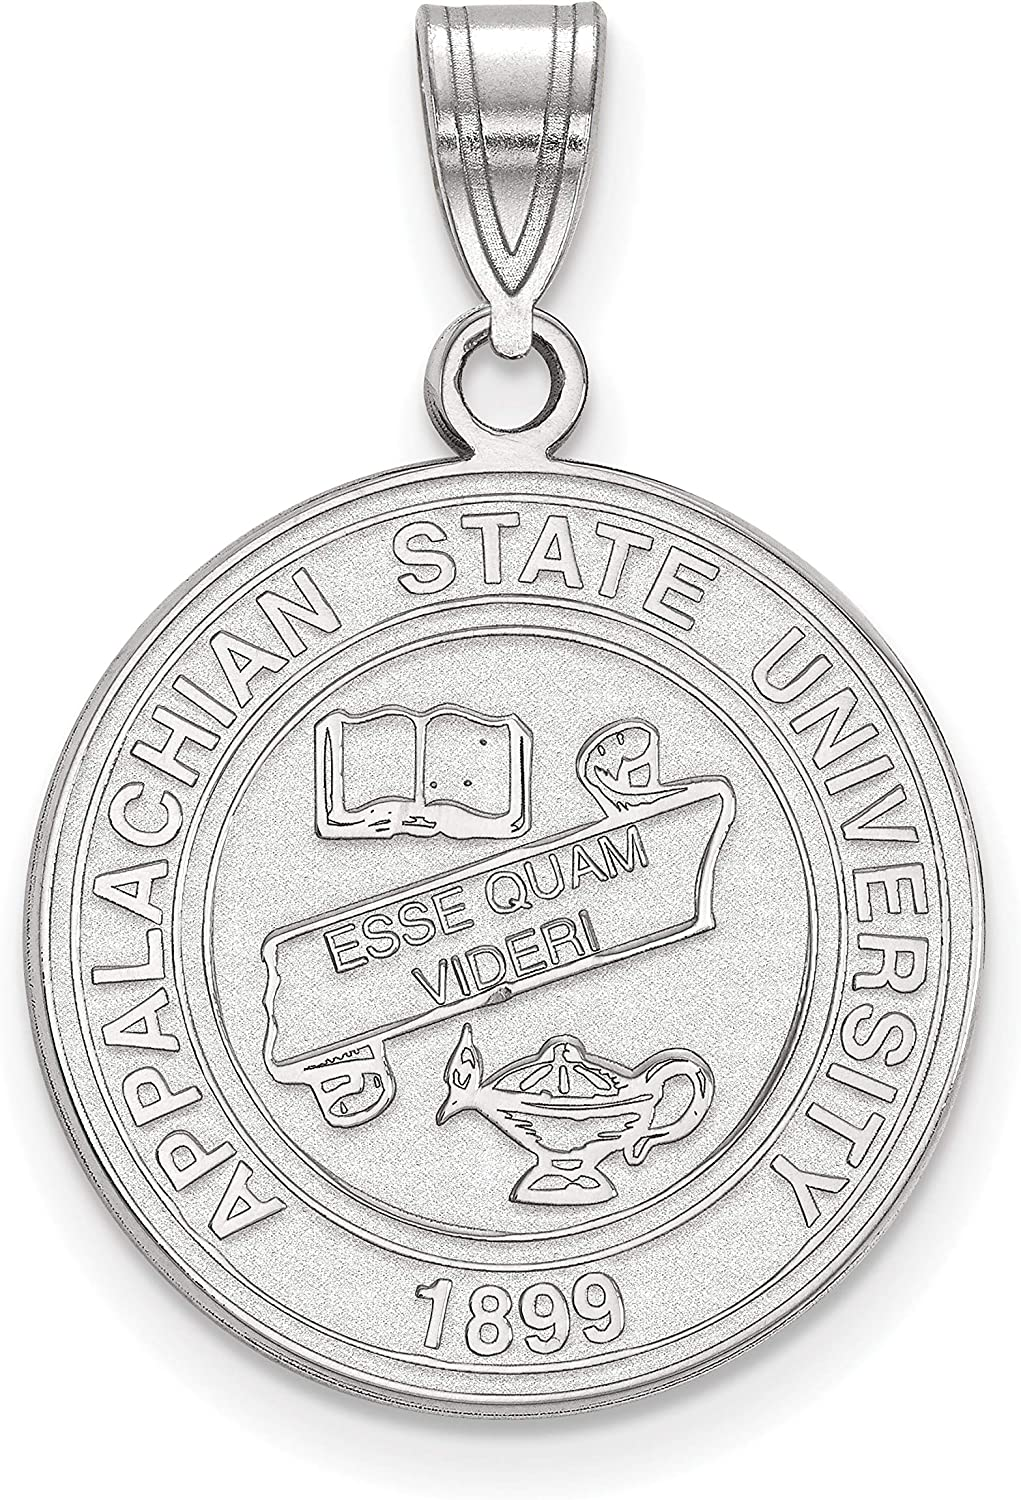 Rh-plated LogoArt University of Alabama Large Disc Pendant Beautiful Sterling silver 925 sterling Sterling S